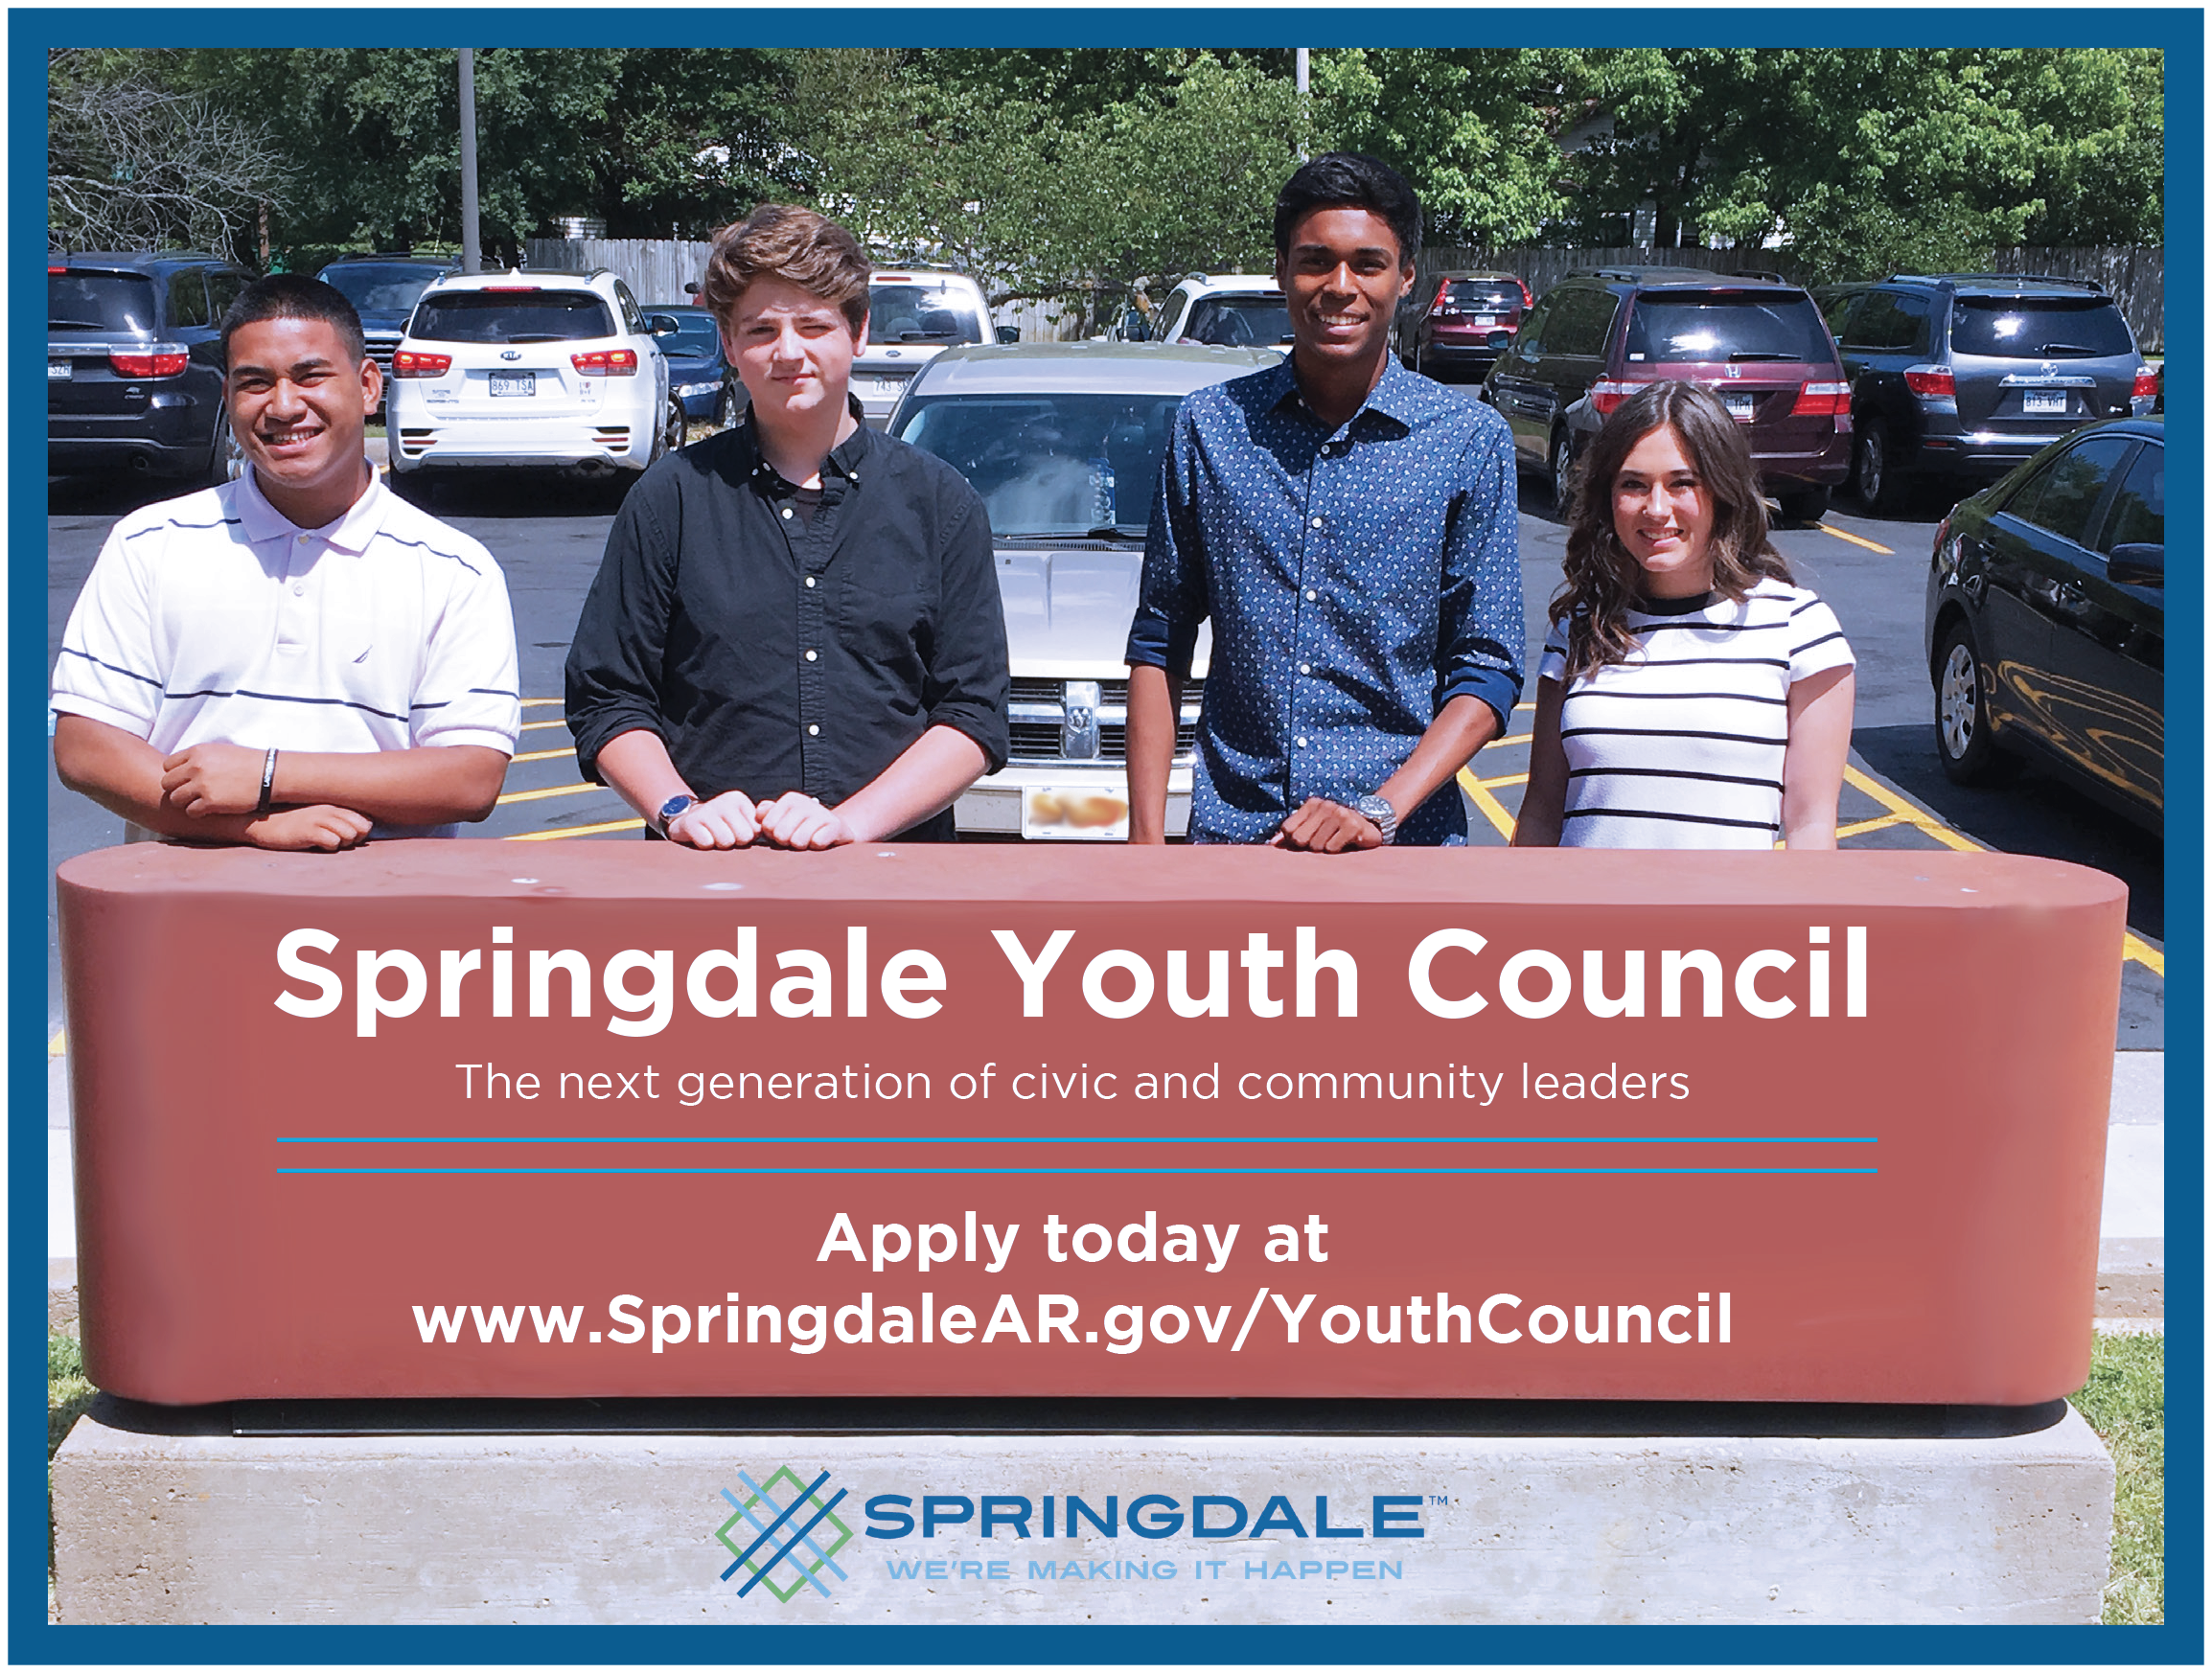 Springdale Youth Council